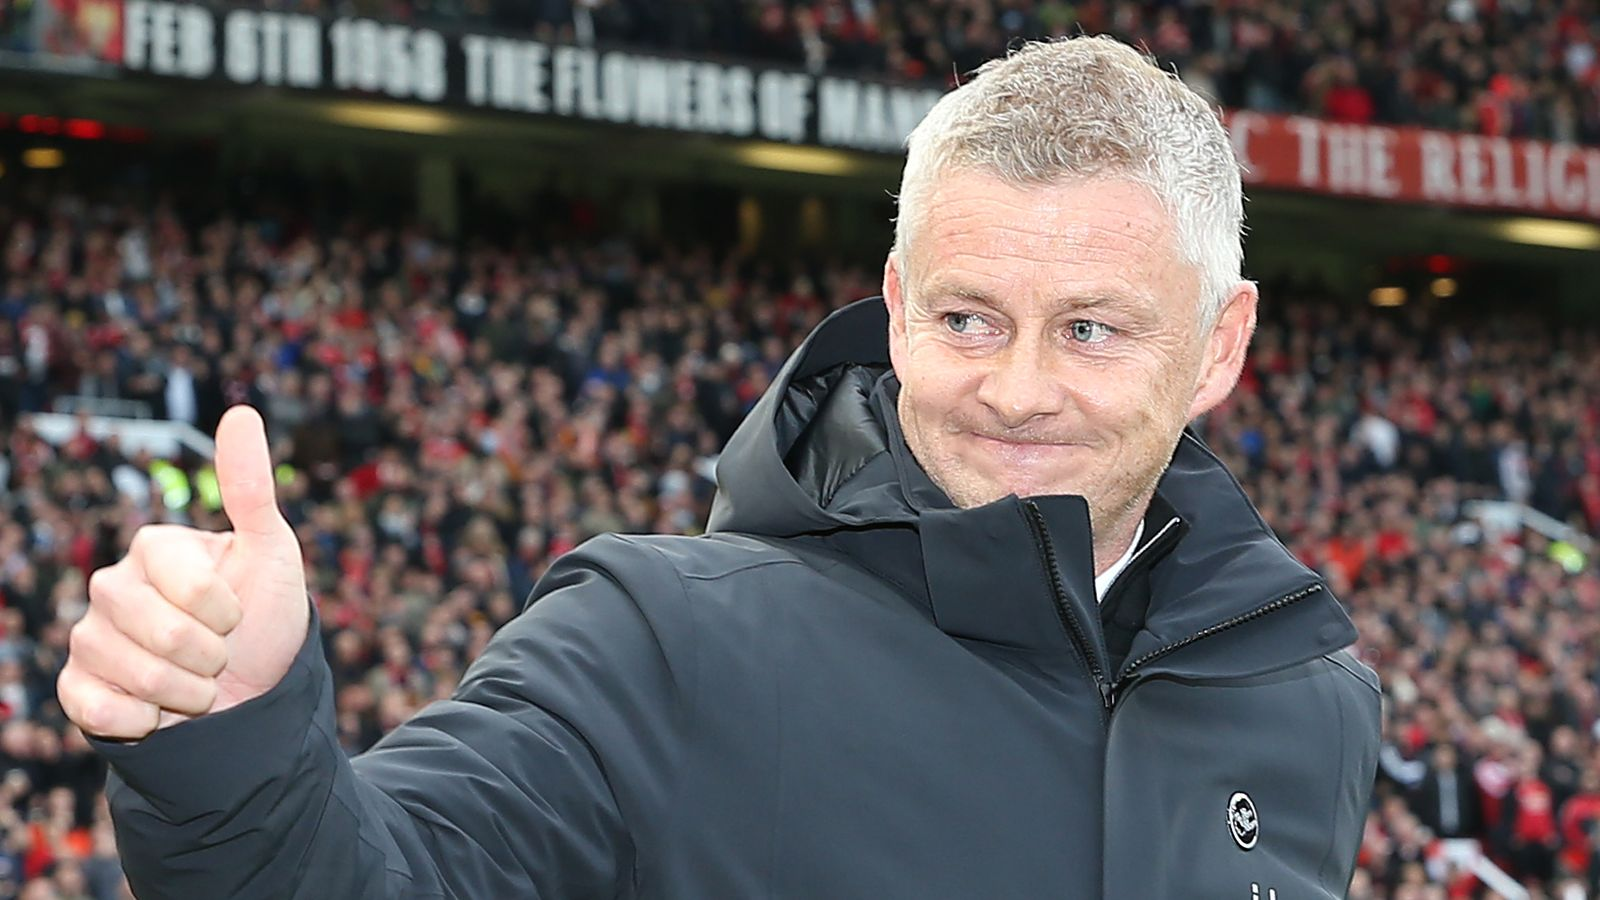 Ole Gunnar Solskjaer expected to stay at Man Utd despite 5-0 Liverpool defeat